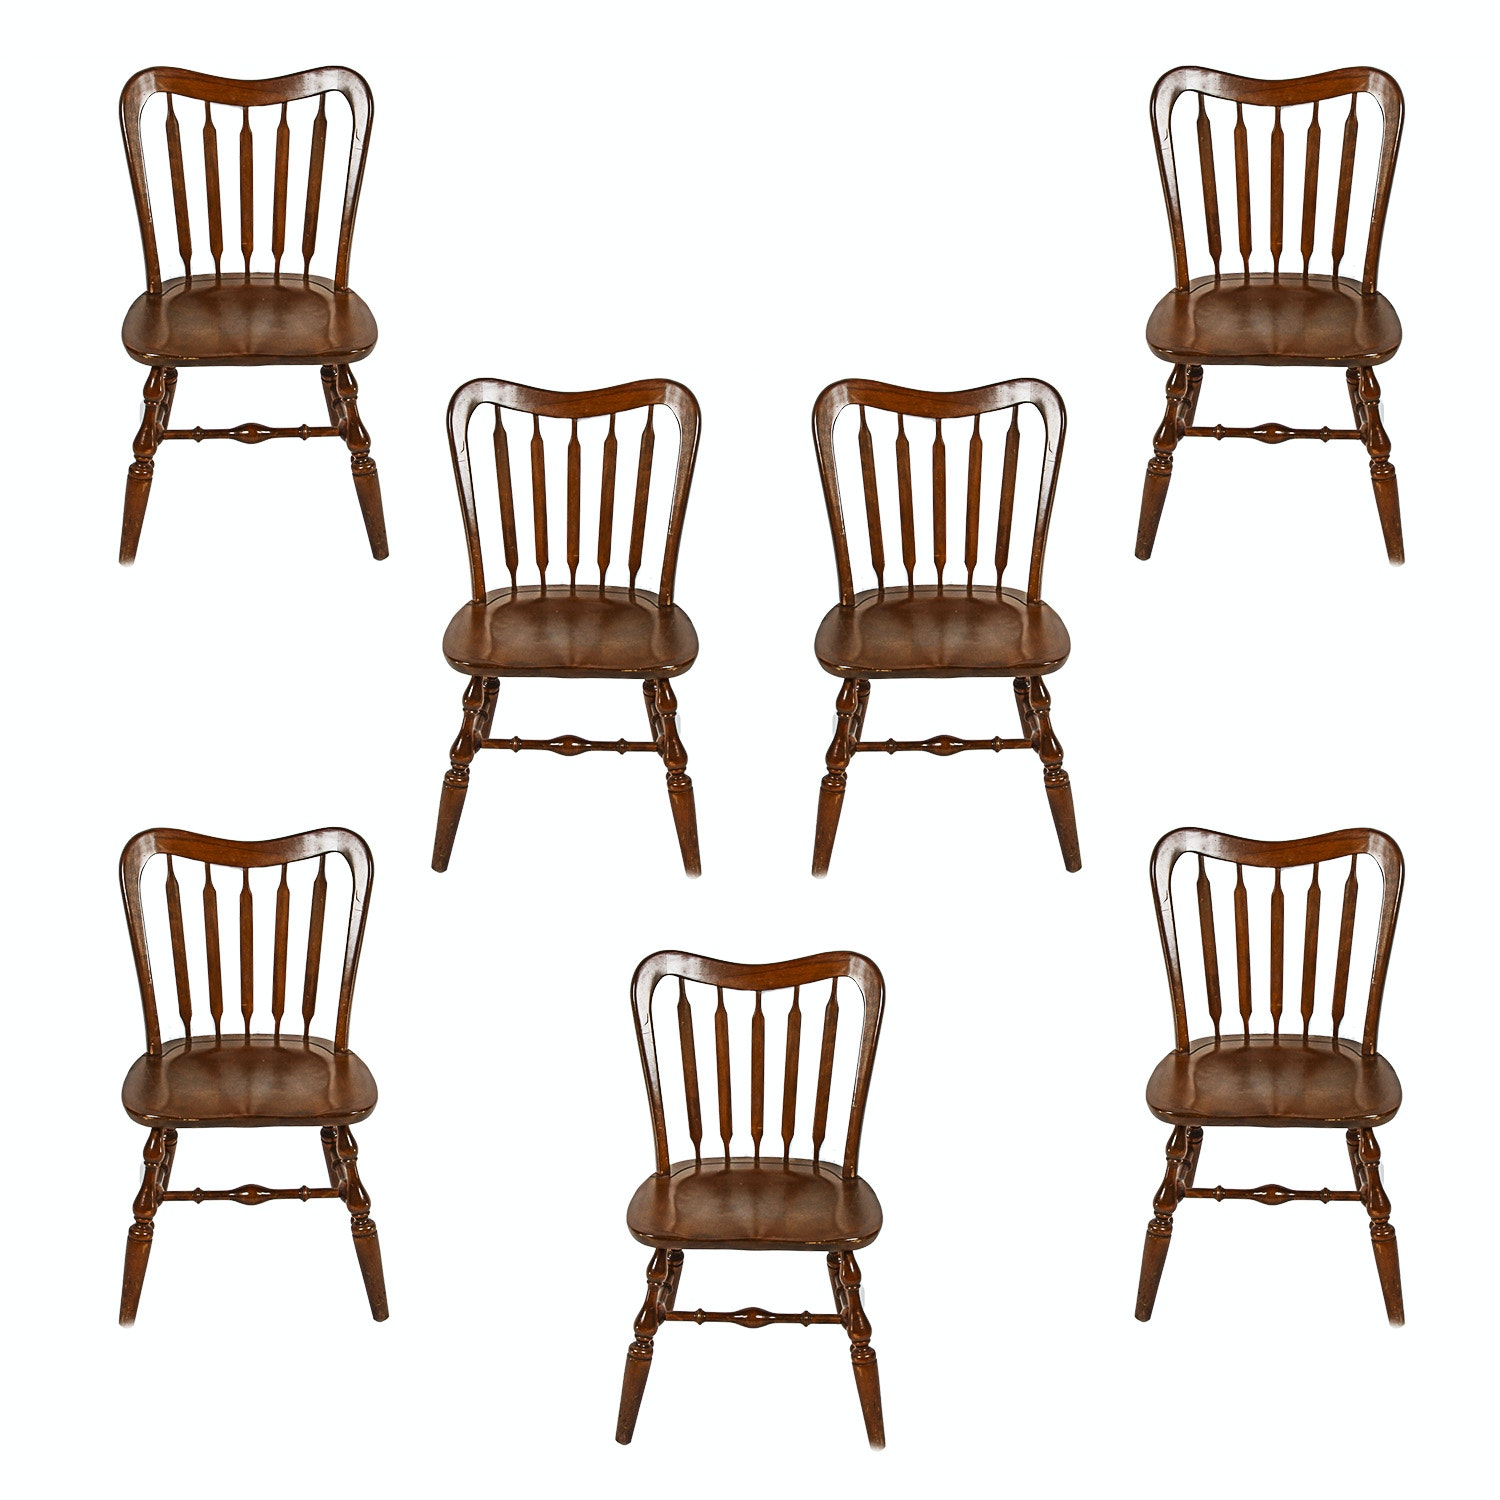 Temple Stuart Furniture Early American Walnut Side Chairs